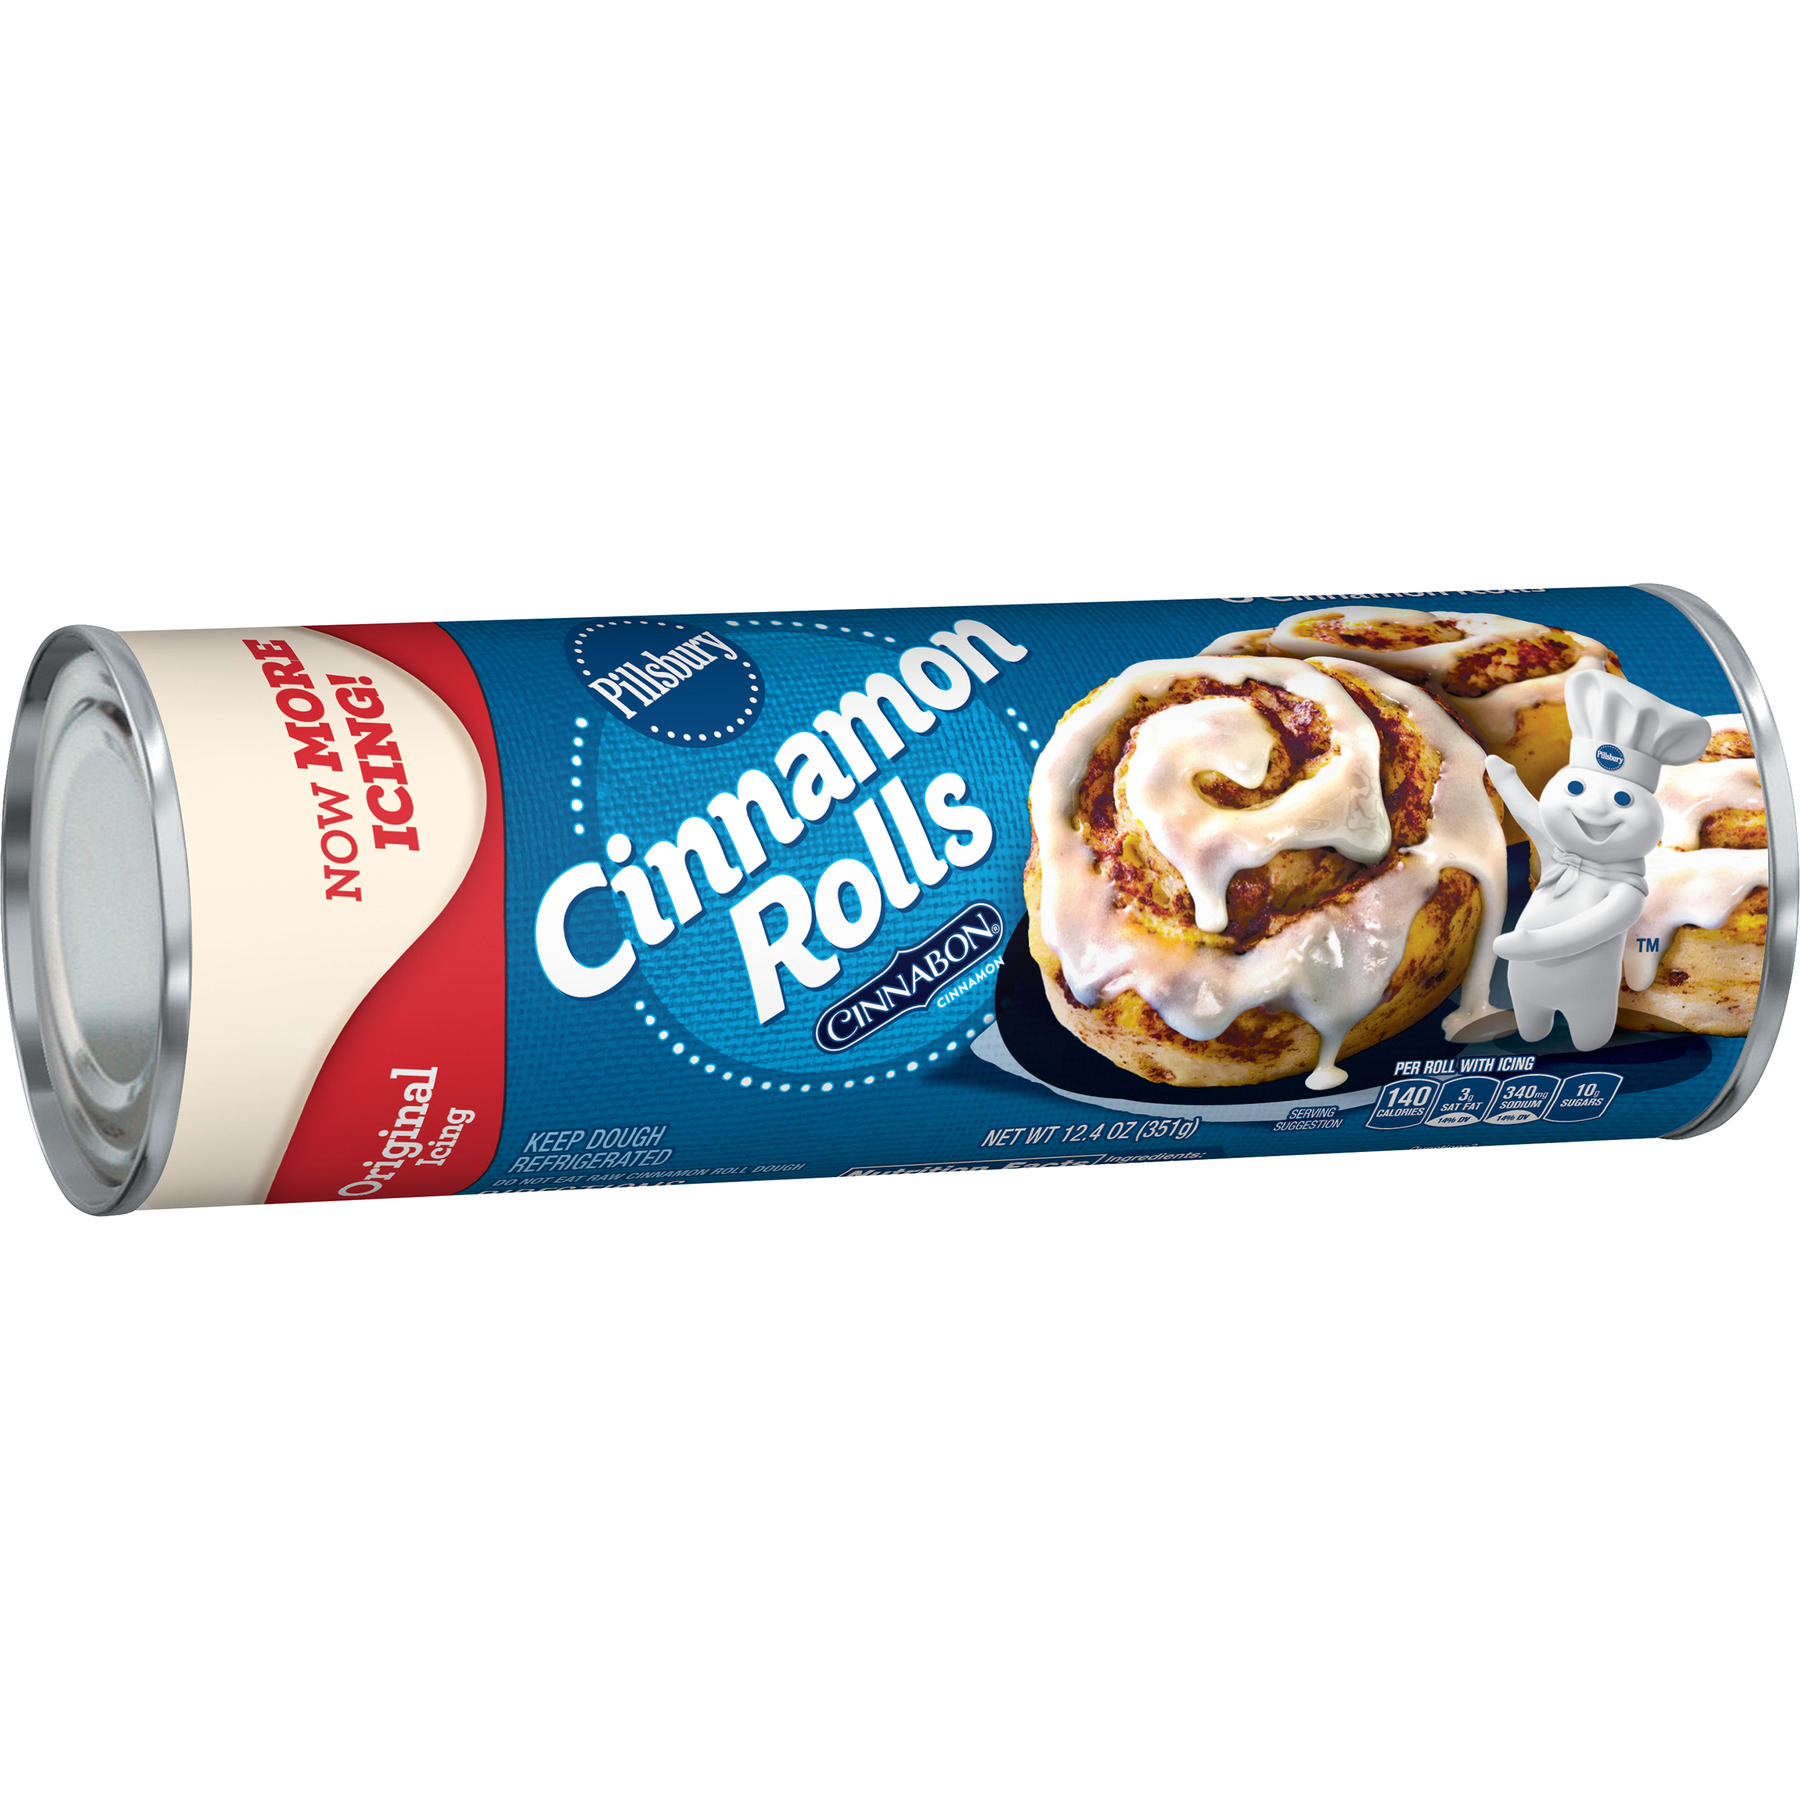 Pillsbury Cinnamon Rolls With Icing 8 Ct, 12.4 oz